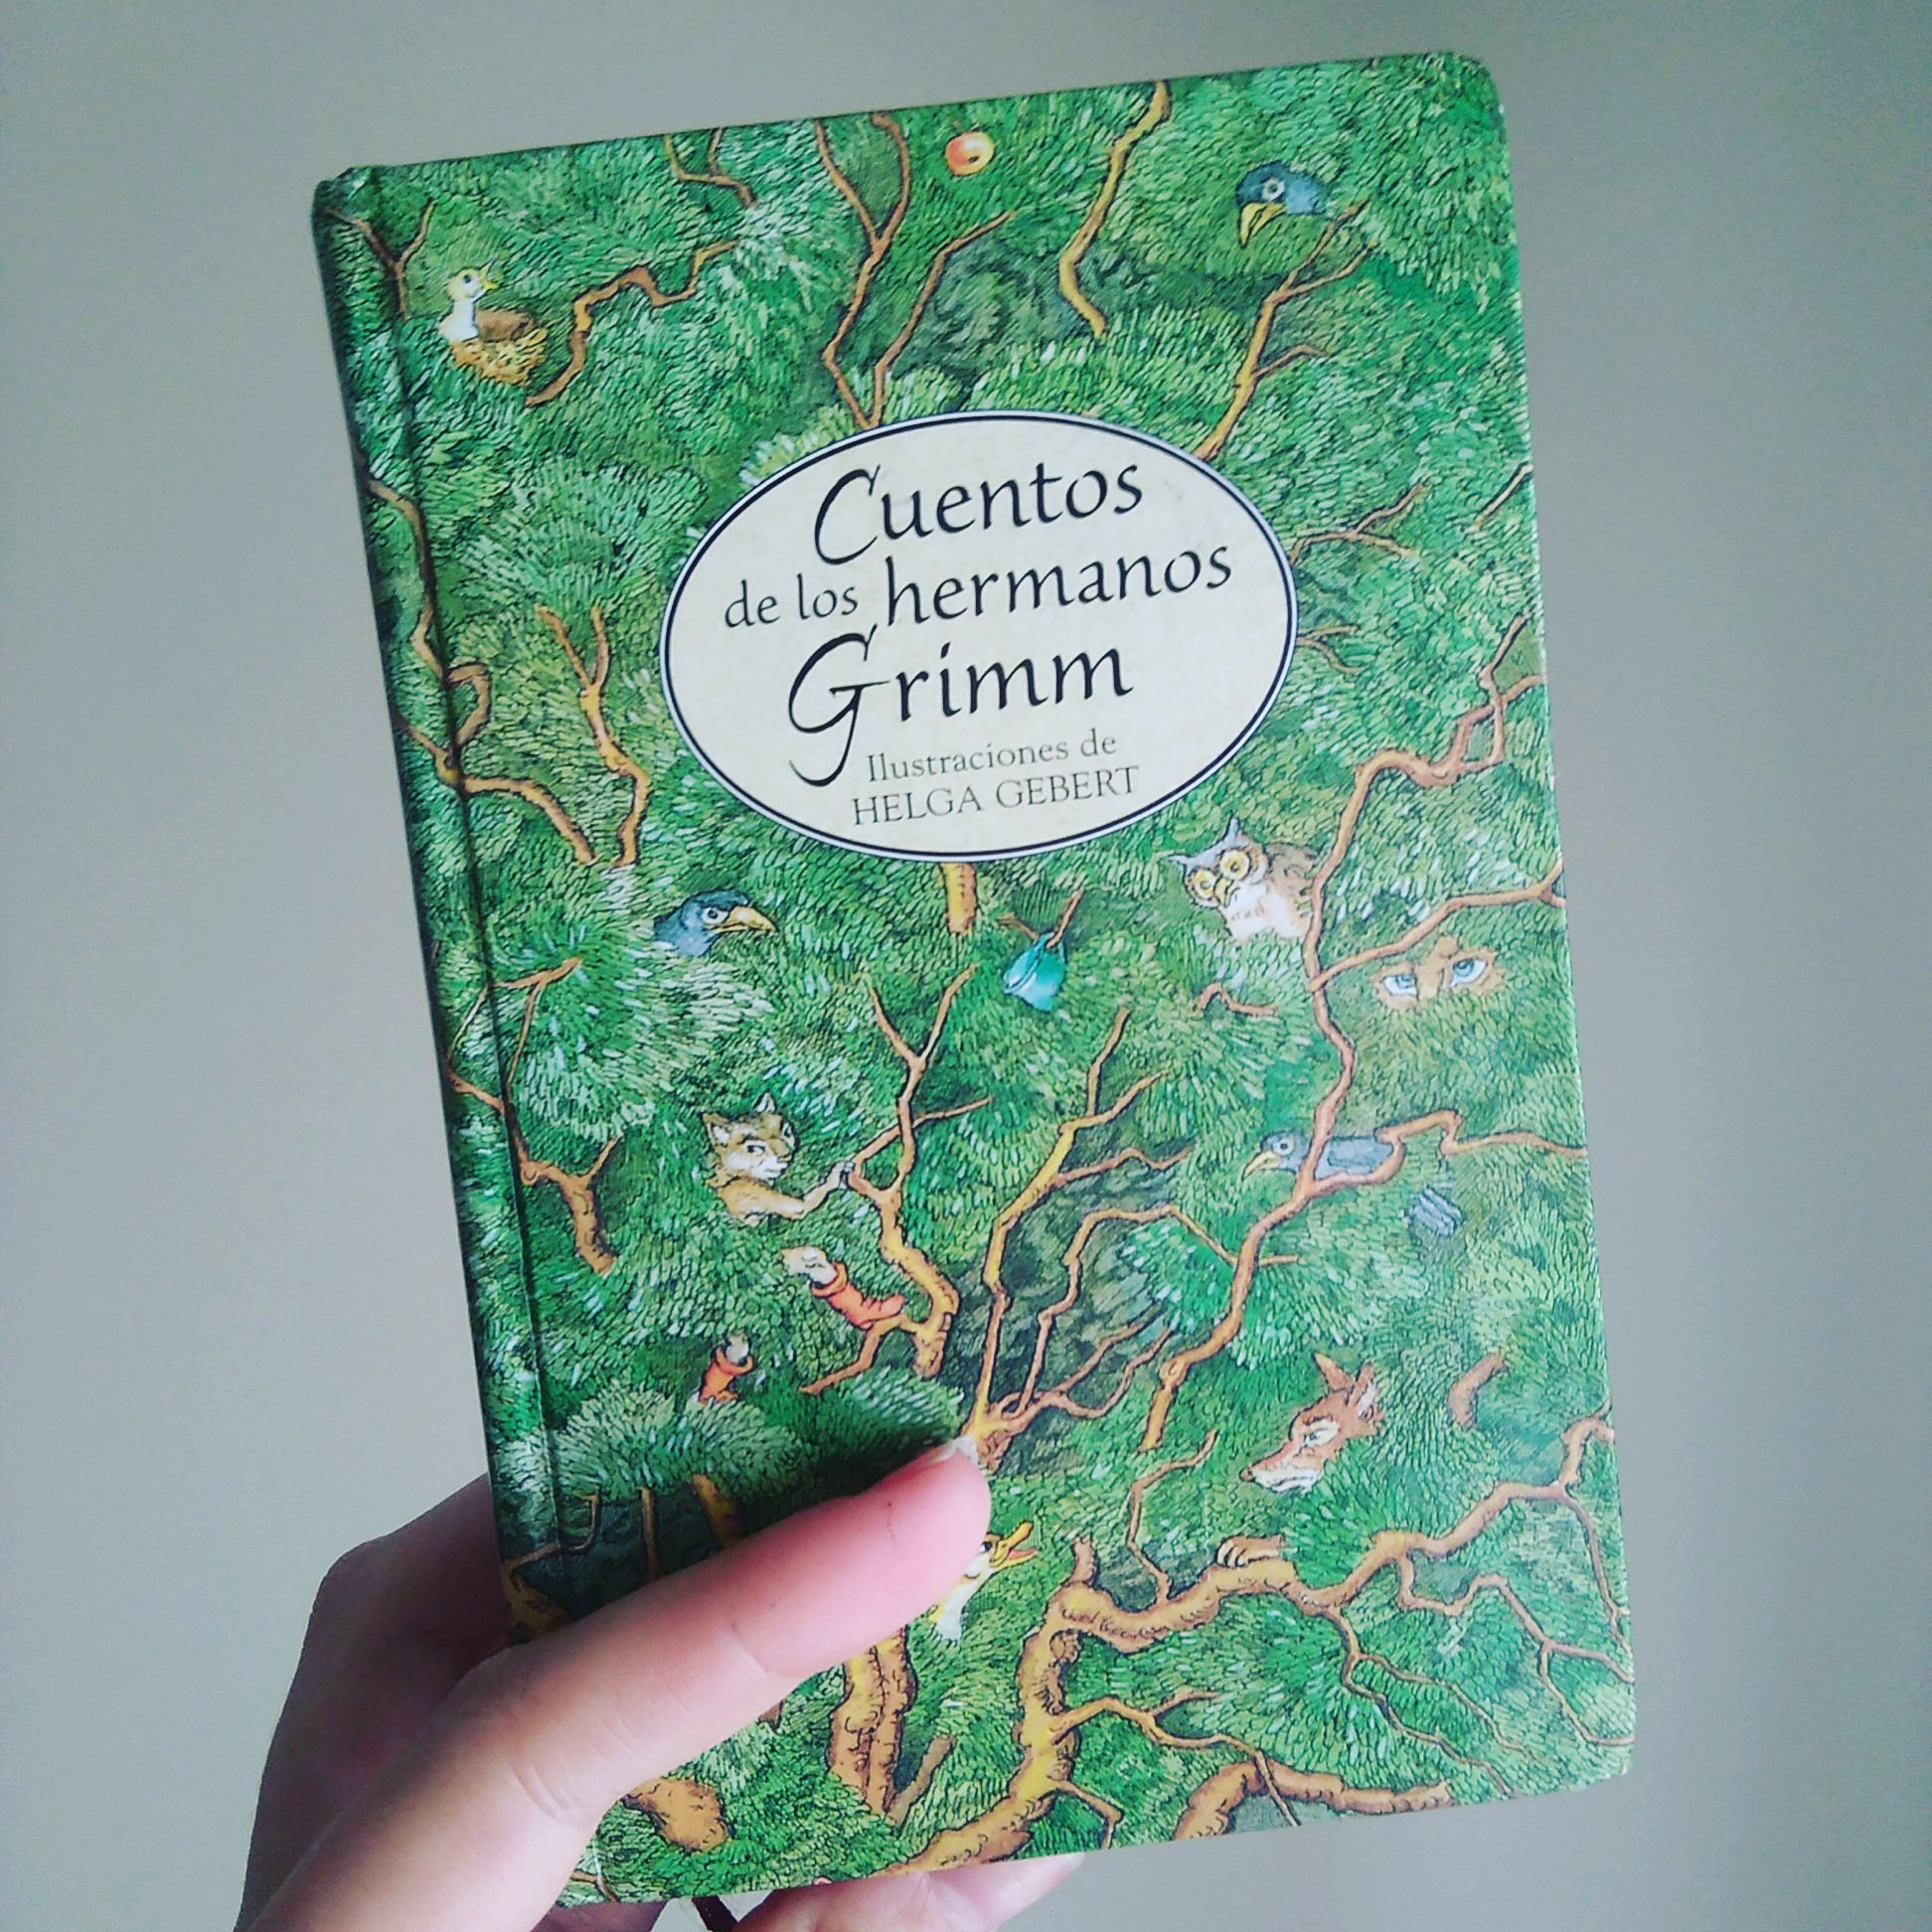 Libros De Los Hermanos Grimm Cuentos De Los Hermanos Grimm Readings In The North